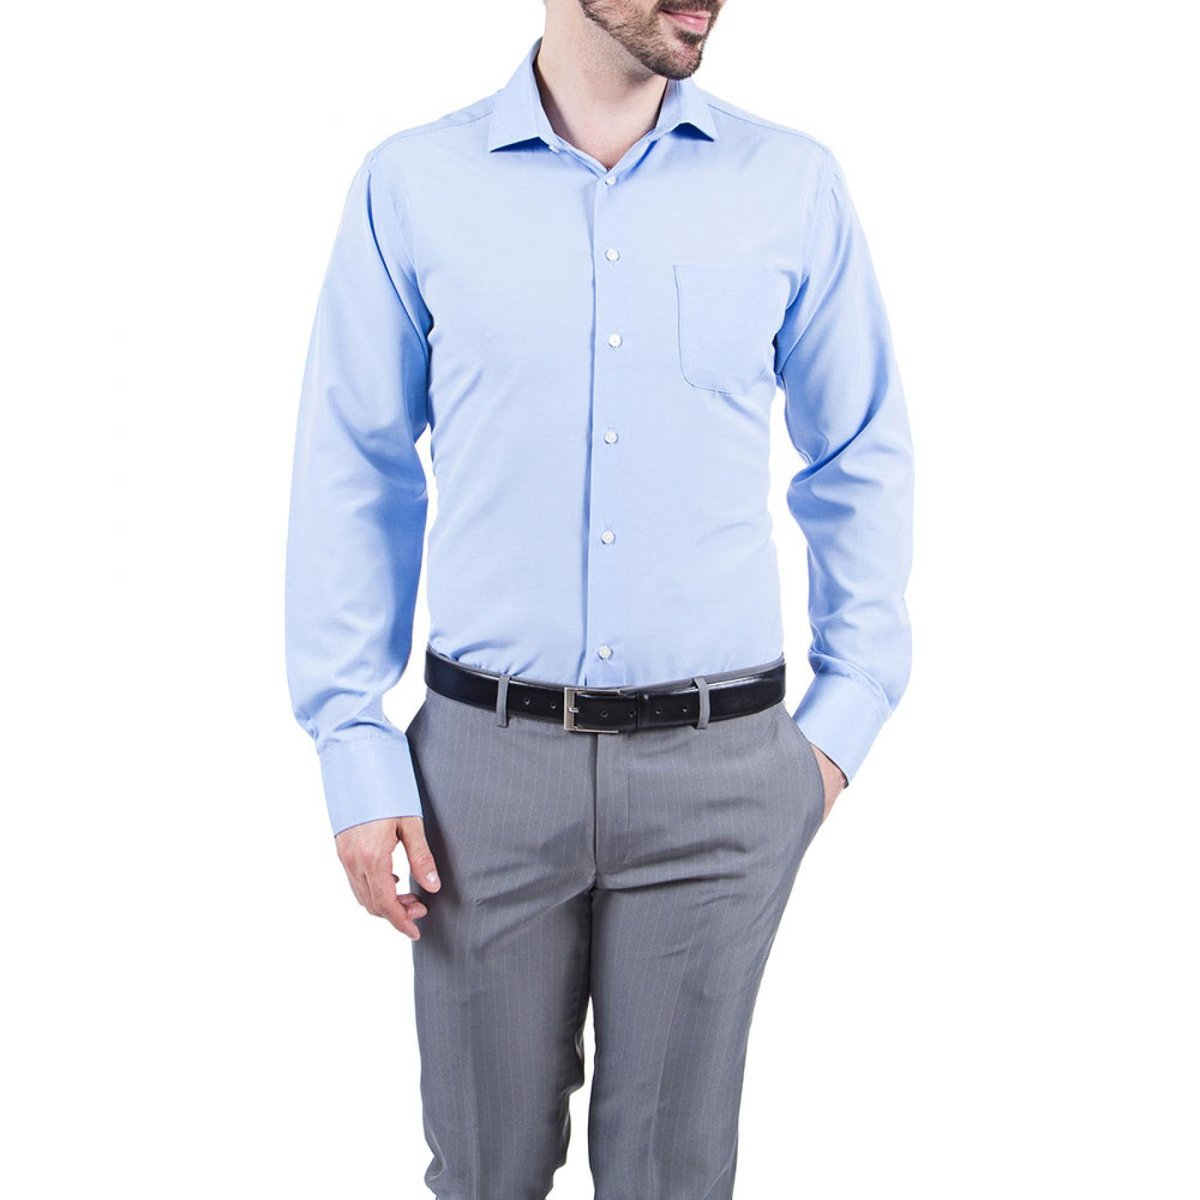 Camisa Social Colombo Lisa Masculino - Compre Agora  6dd58c34afb15